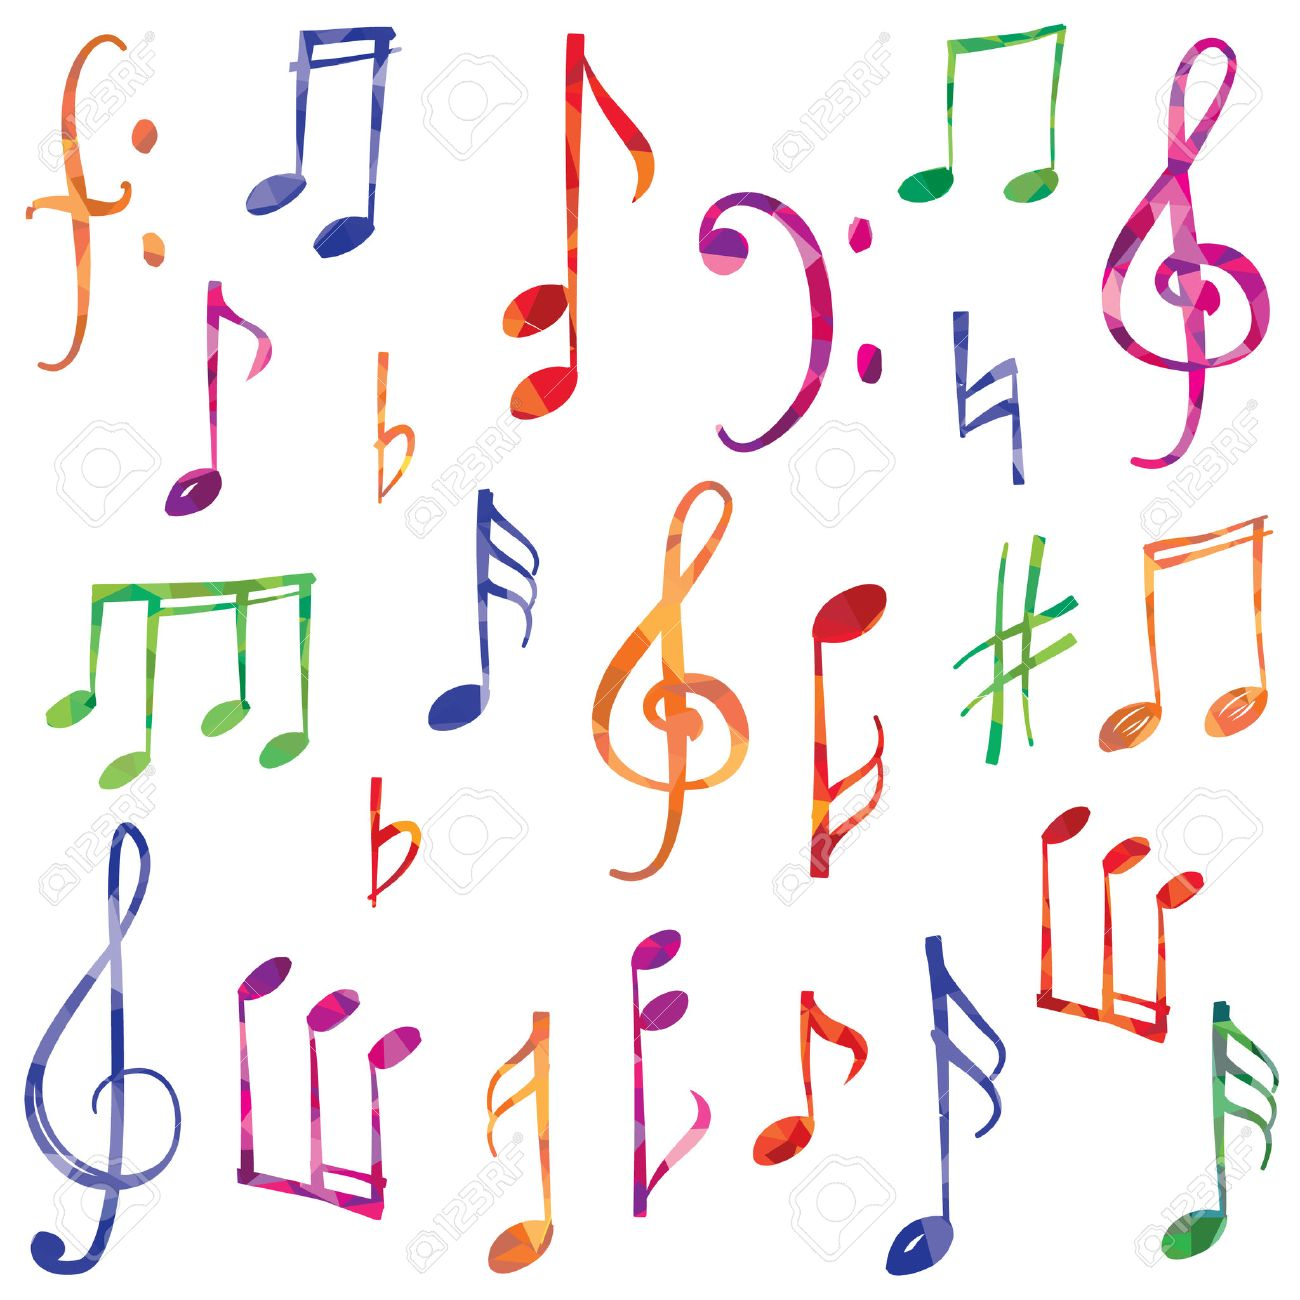 Music notes and signs set. Hand drawn music symbol sketch collection - 57712090